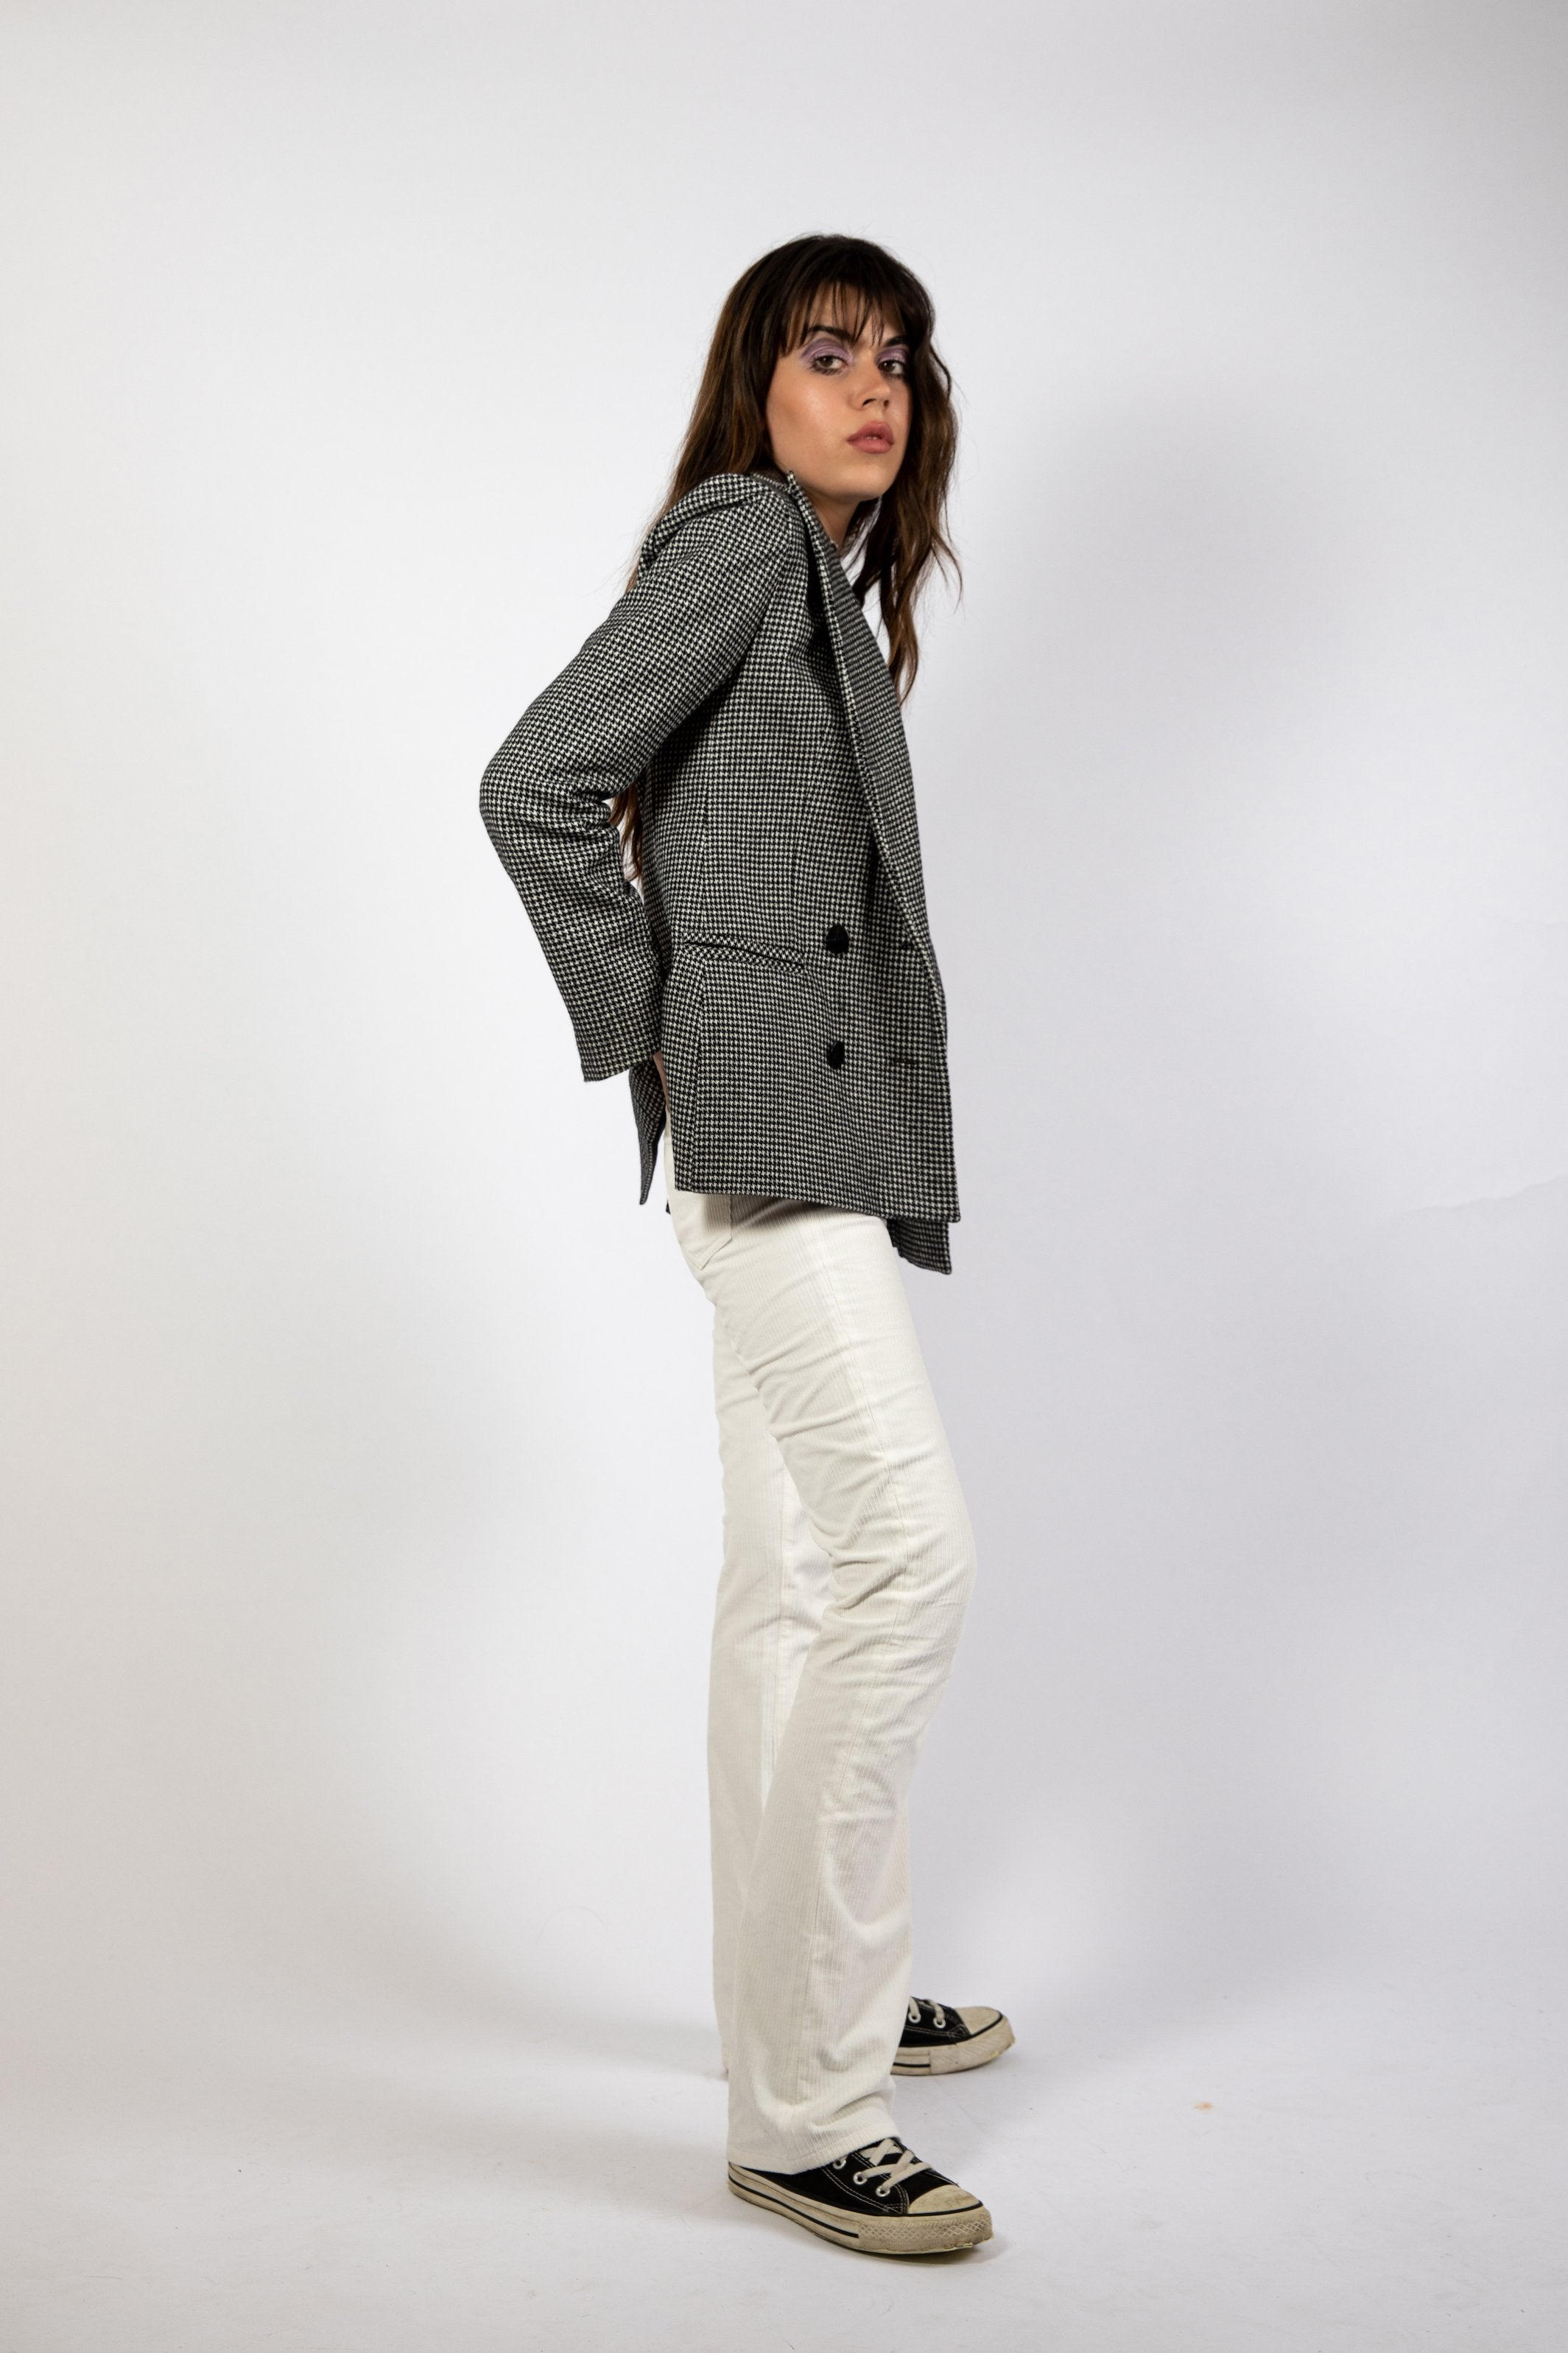 Veste tailleur croisé Coney Good Morning Keith inspiration vintage sixties et seventies